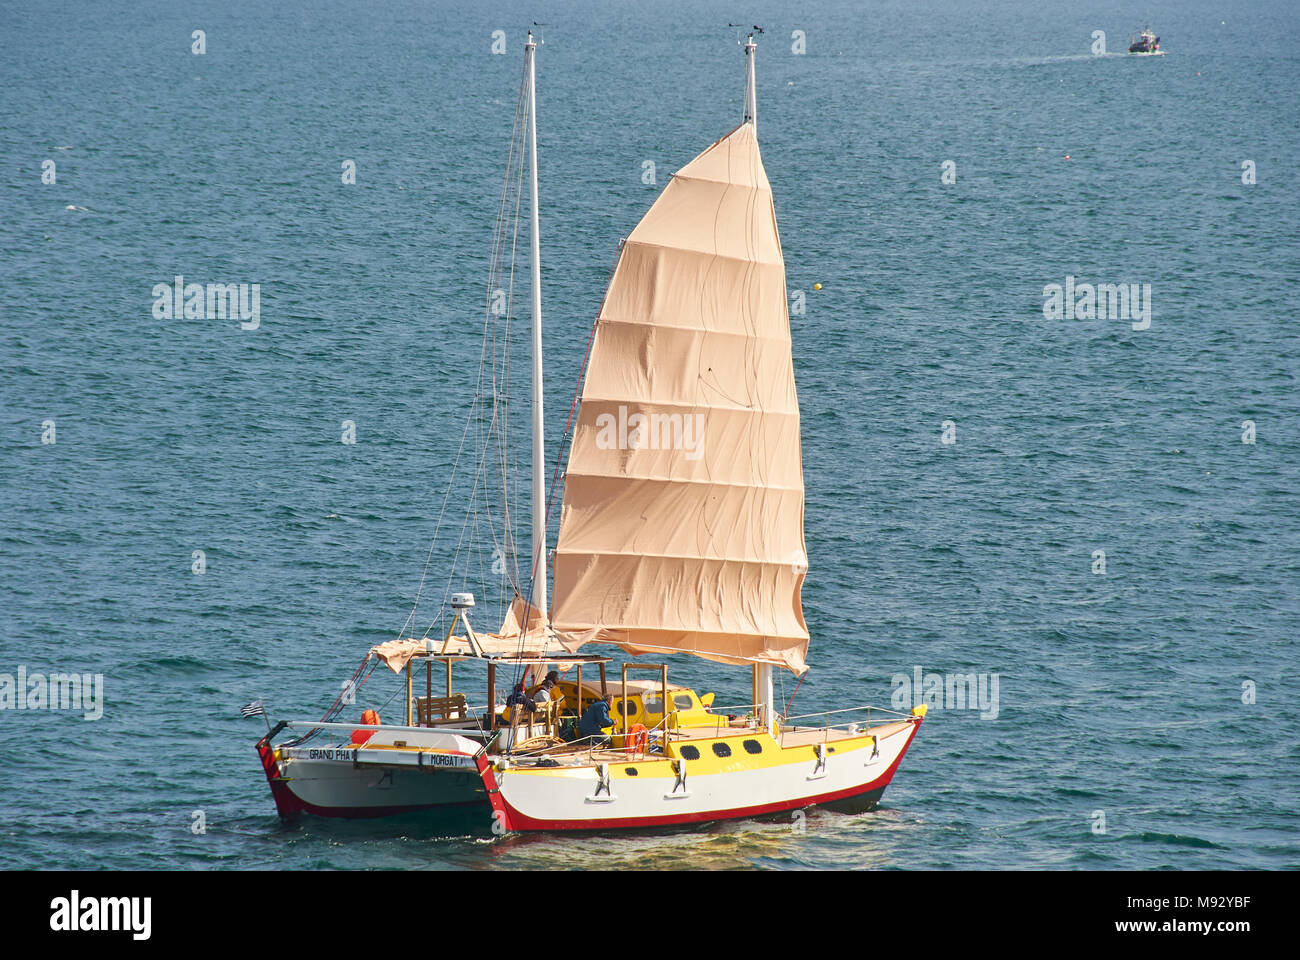 The Grand Pha, a French built Catamaran with a soft sail Rig starts its voyage off the Rade de Brest for the Mediterranean. Stock Photo